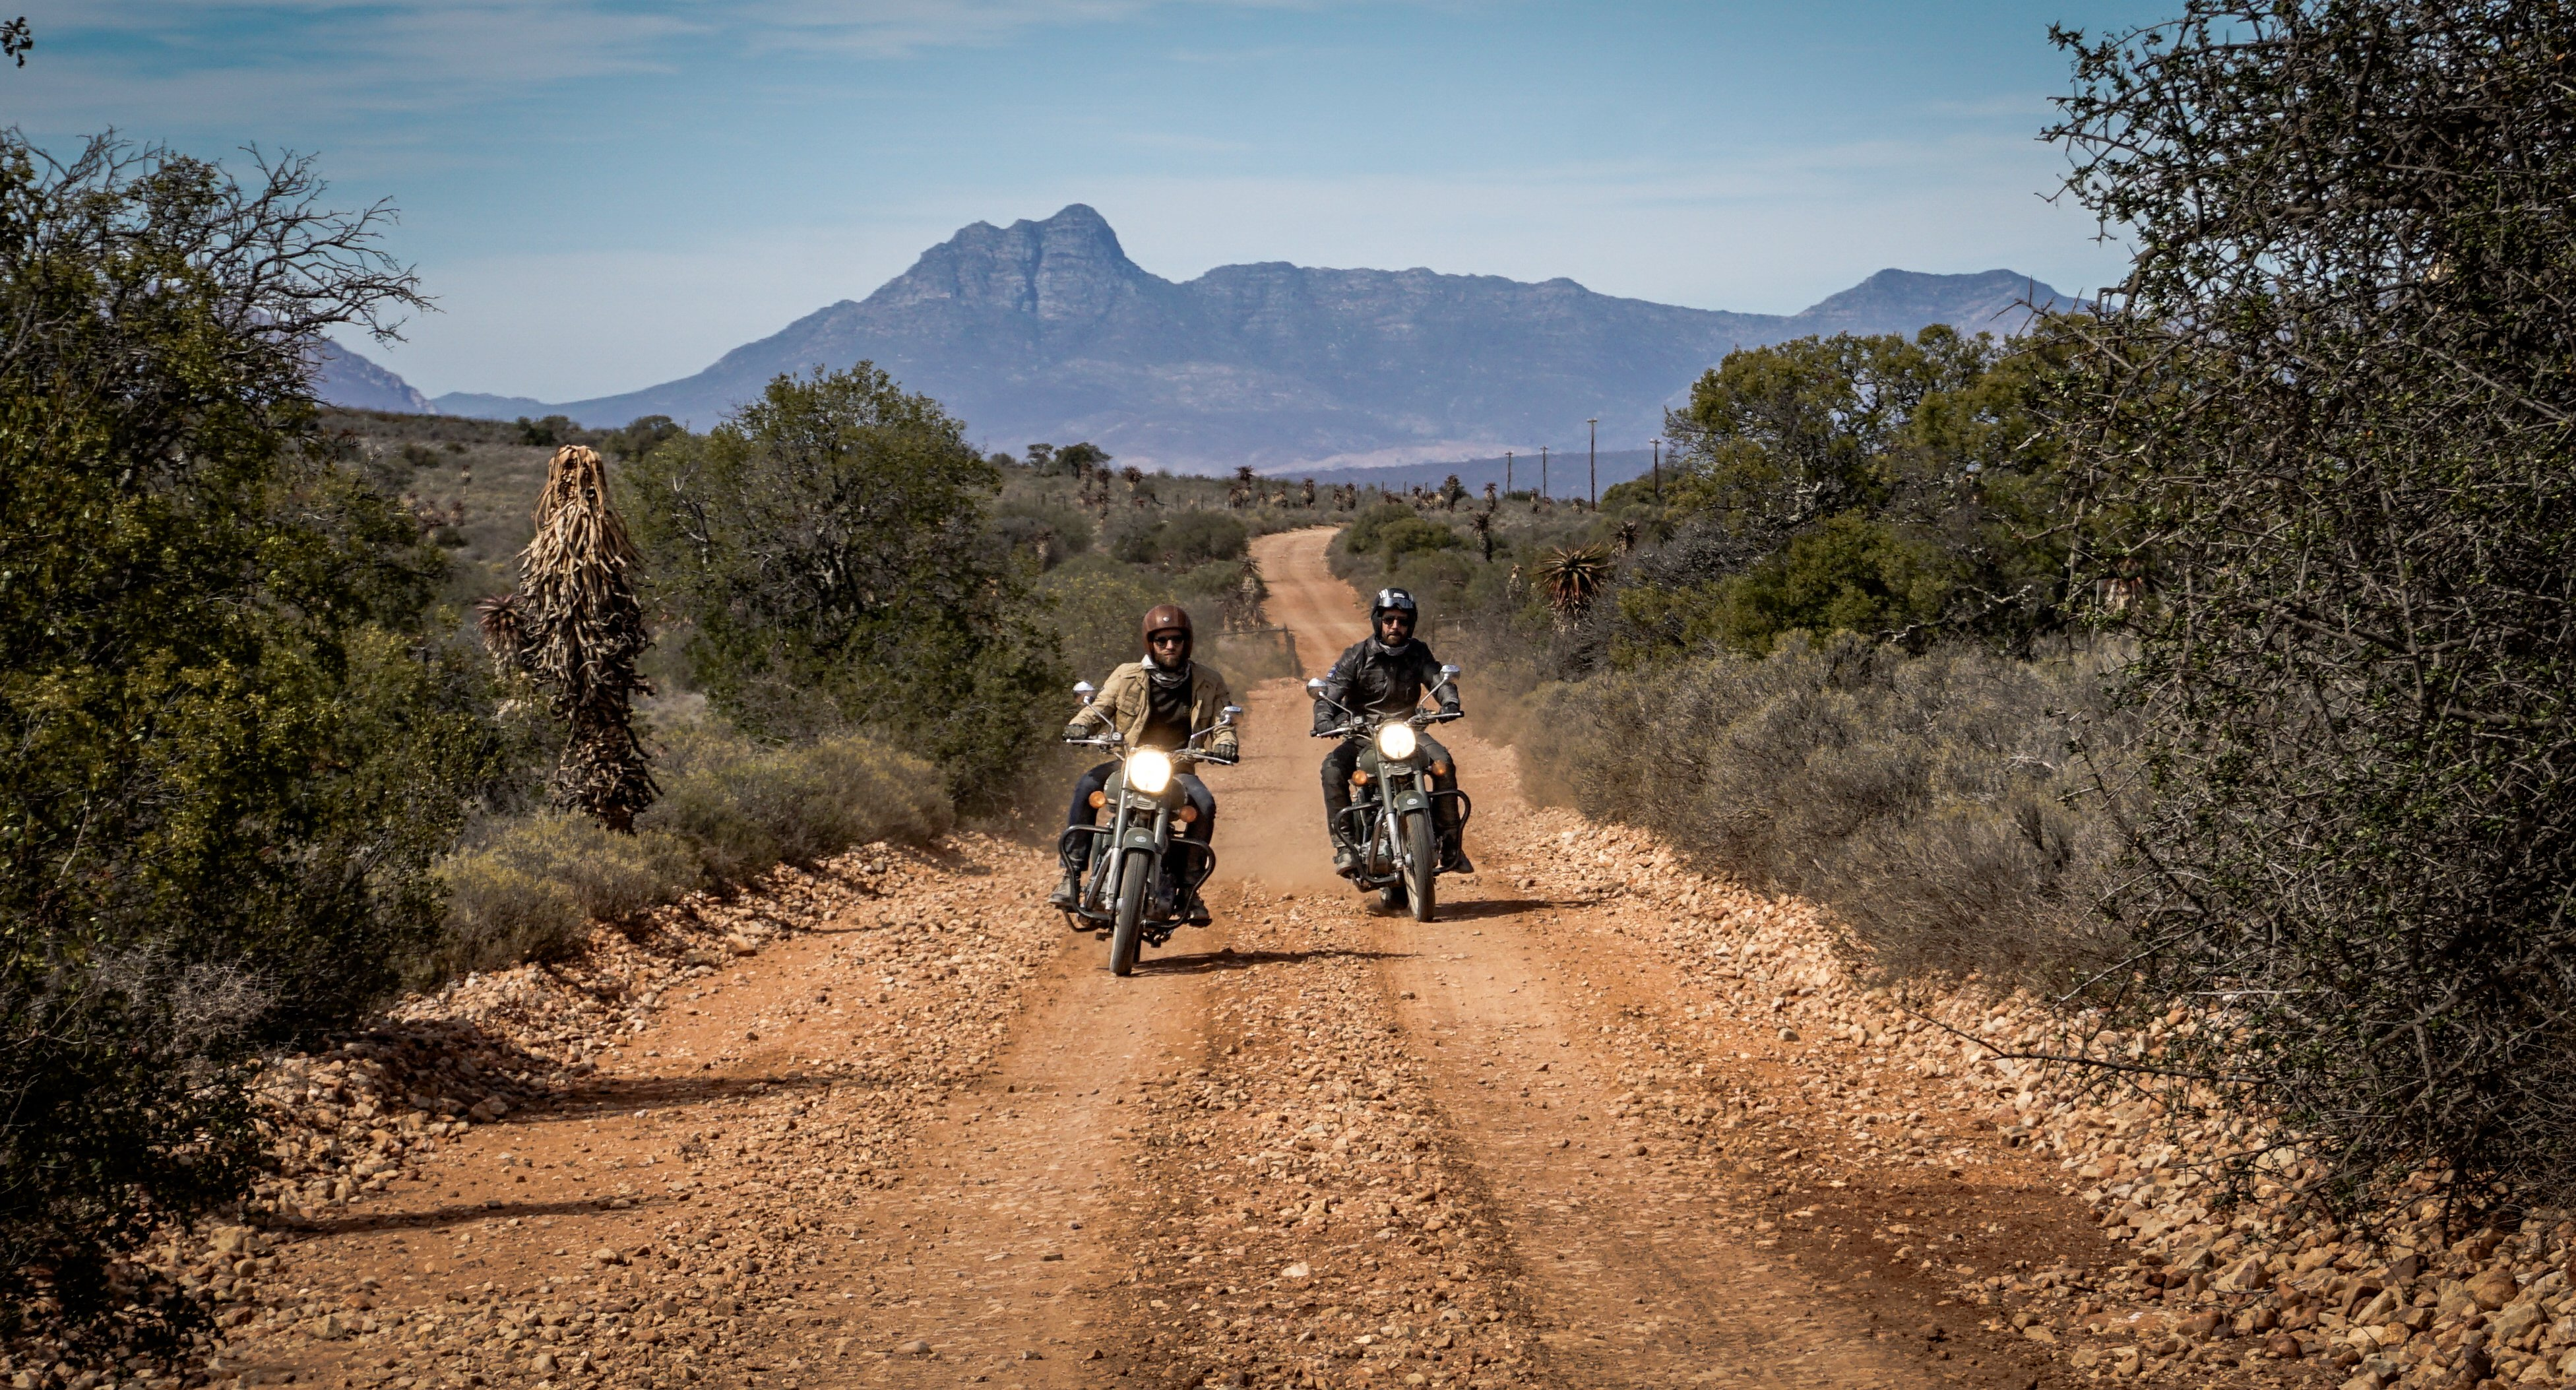 Motorcycle road trip South Africa - South Africa: The Wild Escape